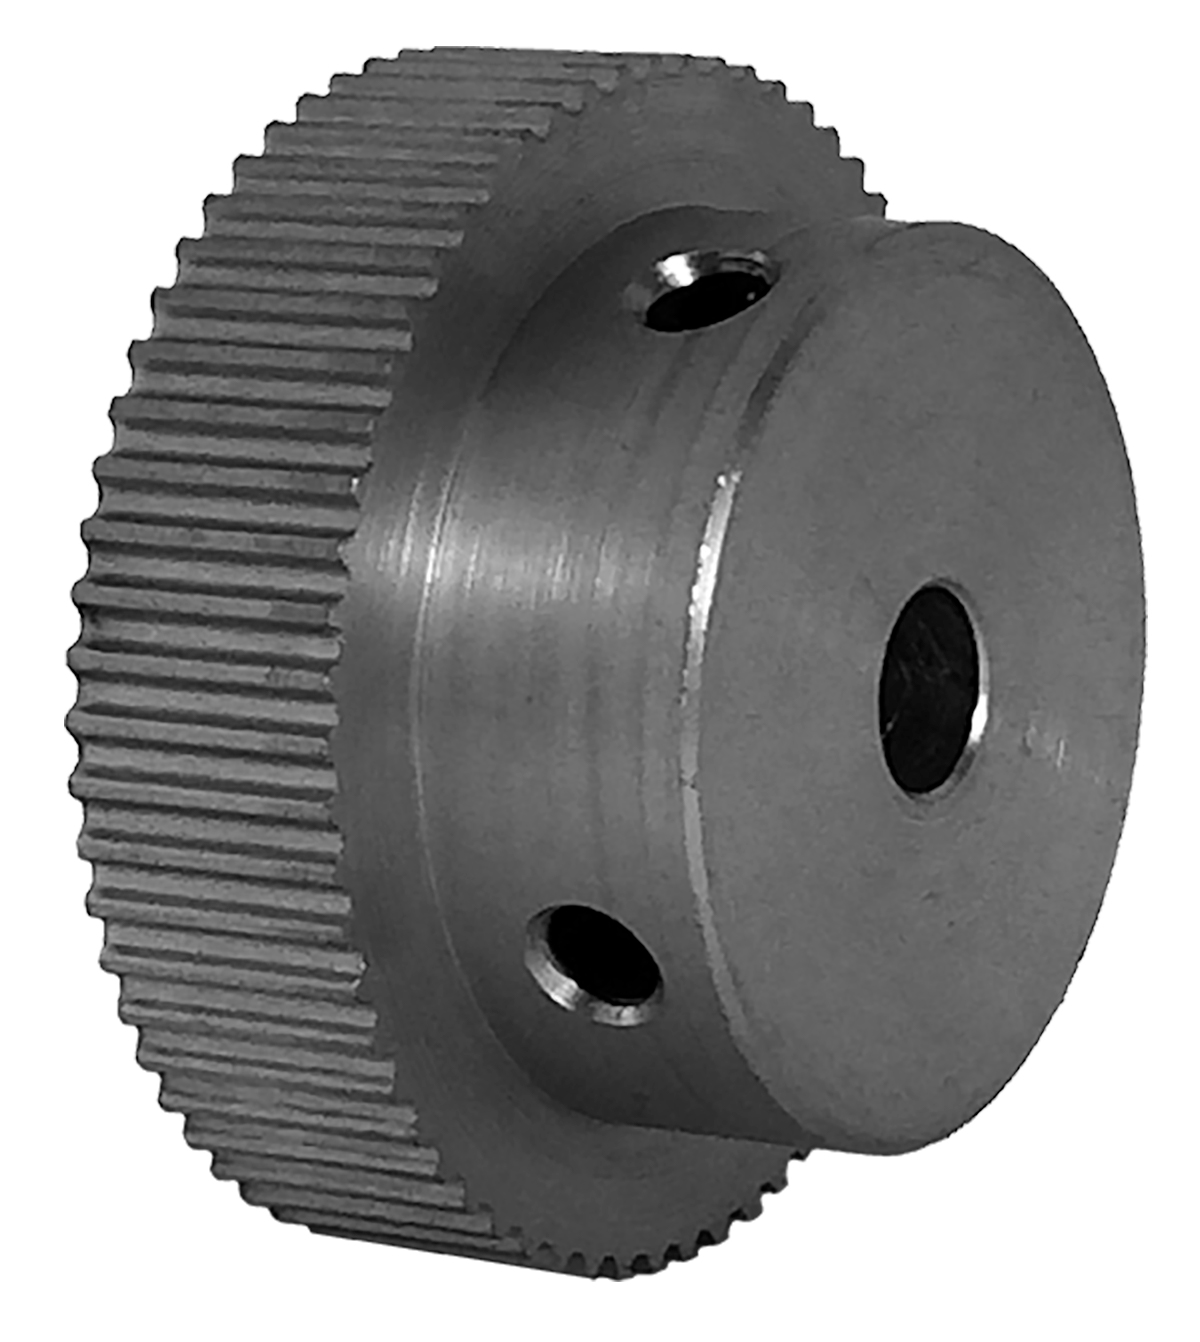 62-2P06-6A3 - Aluminum Powerhouse® Pulleys